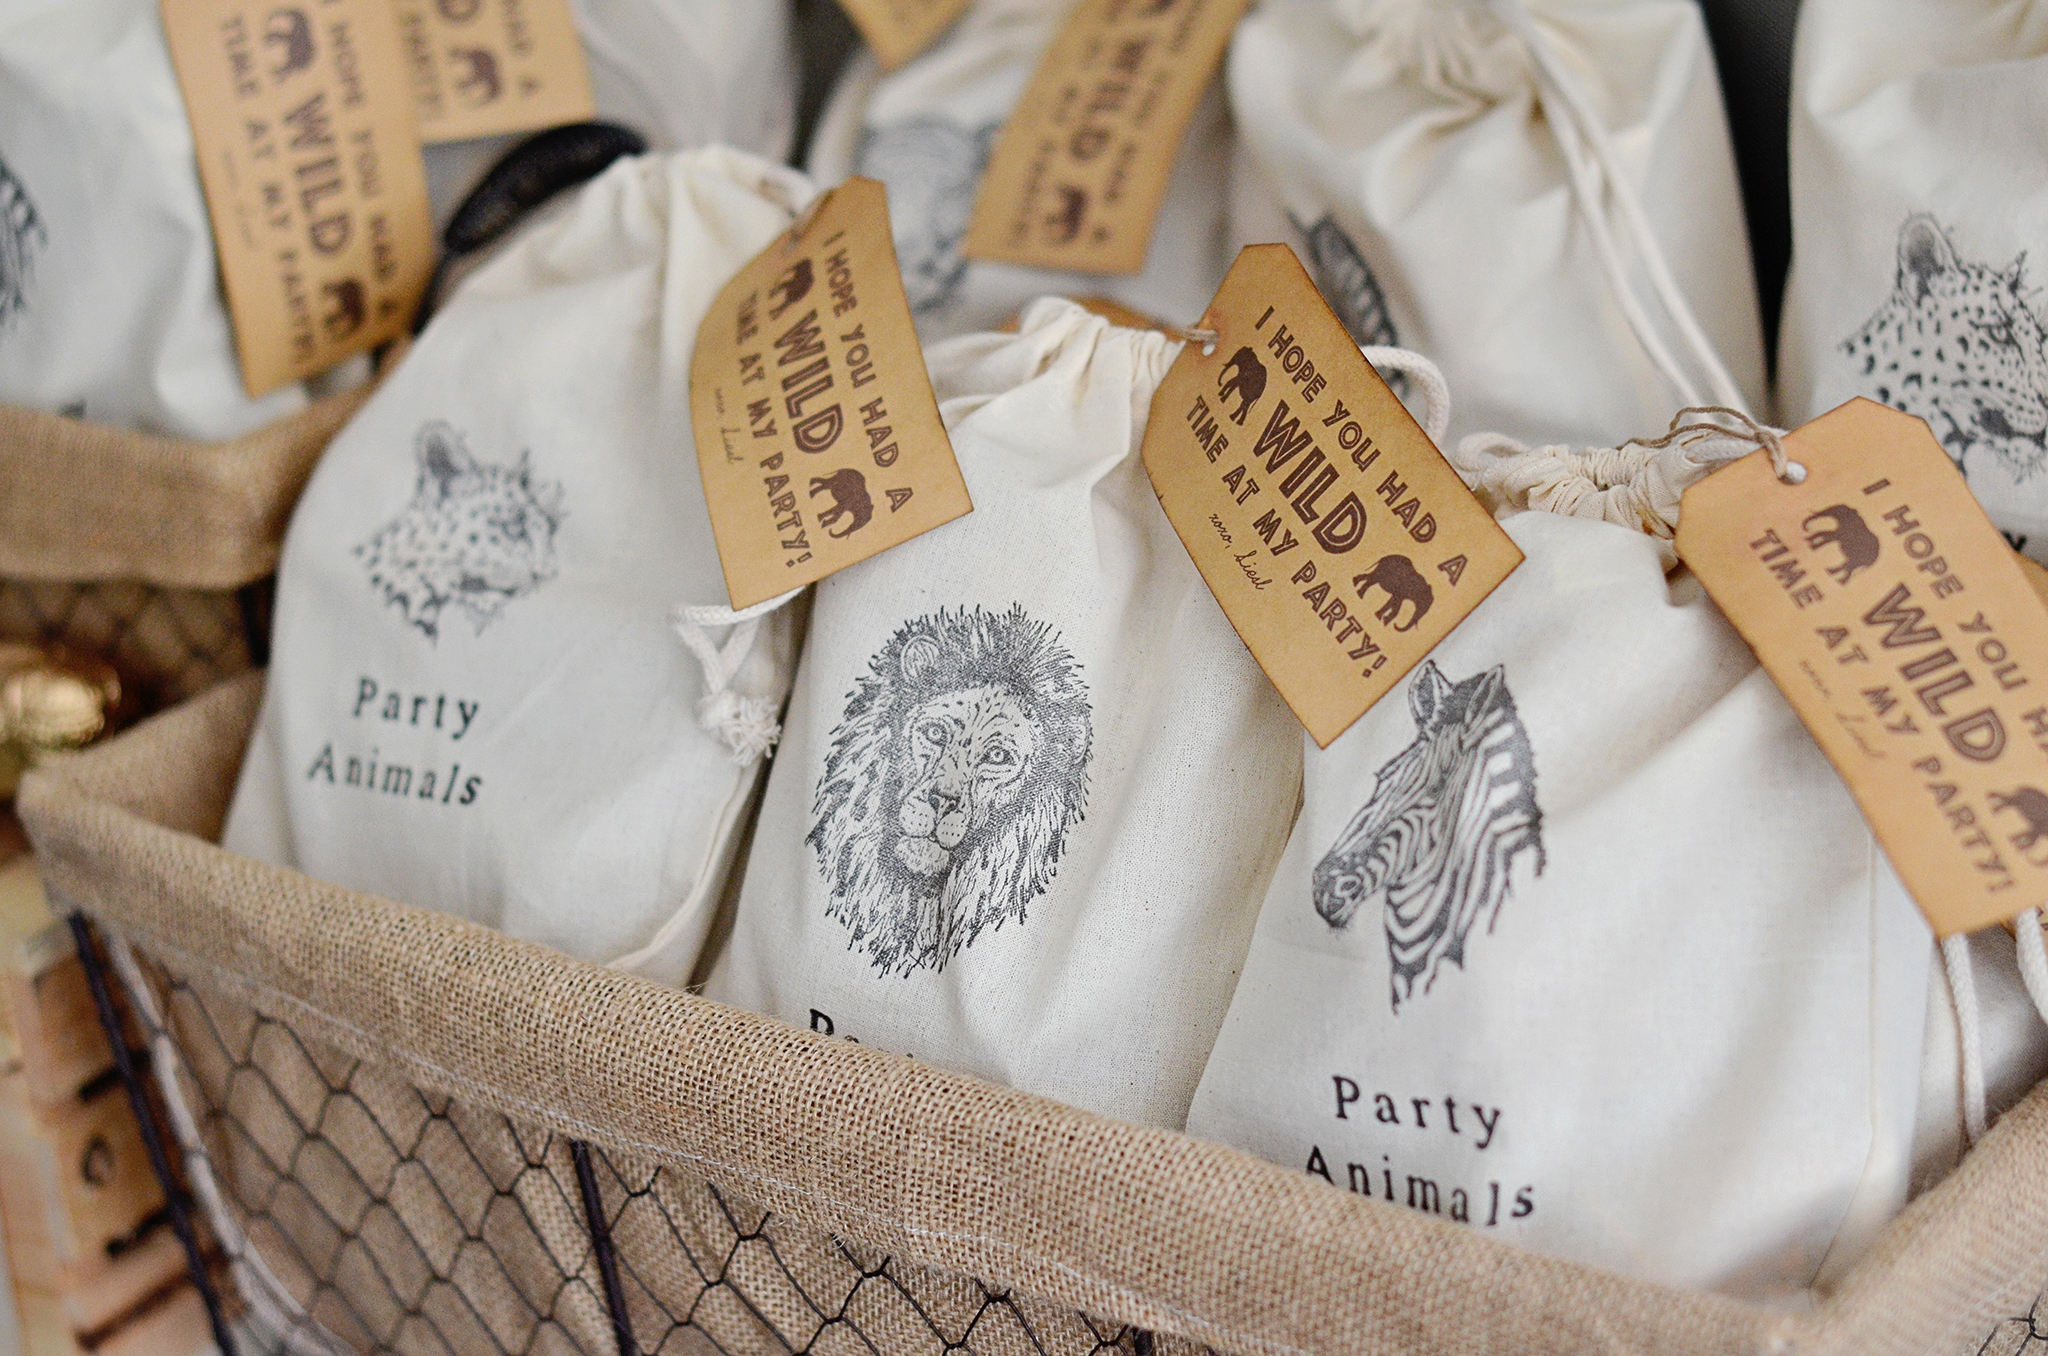 Safari Animal Party Favors!